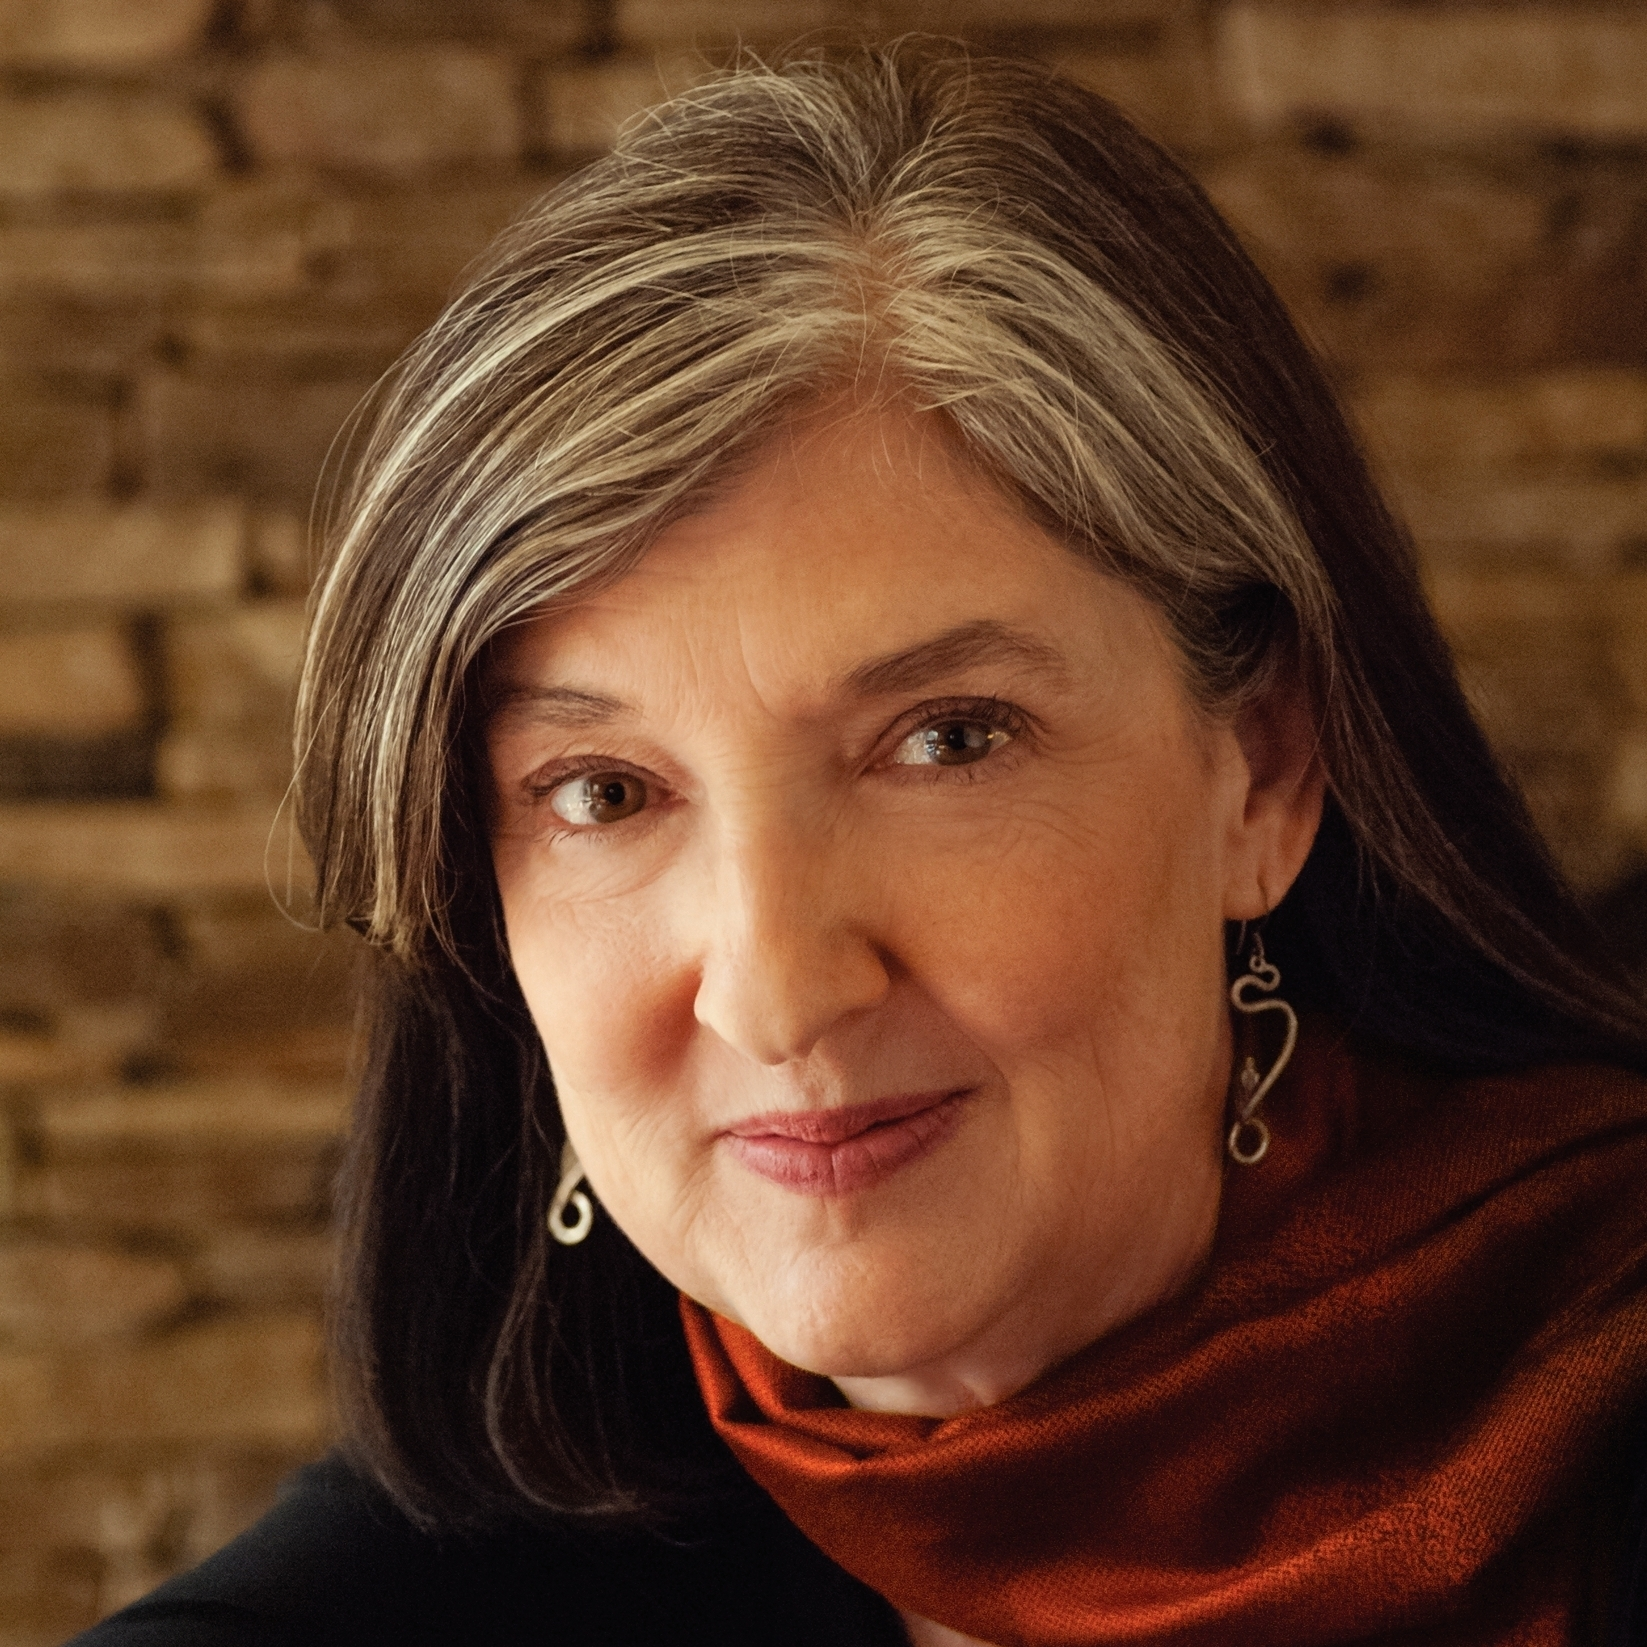 Barbara Kingsolver's previous books include The Poisonwood Bible and The Bean Trees.